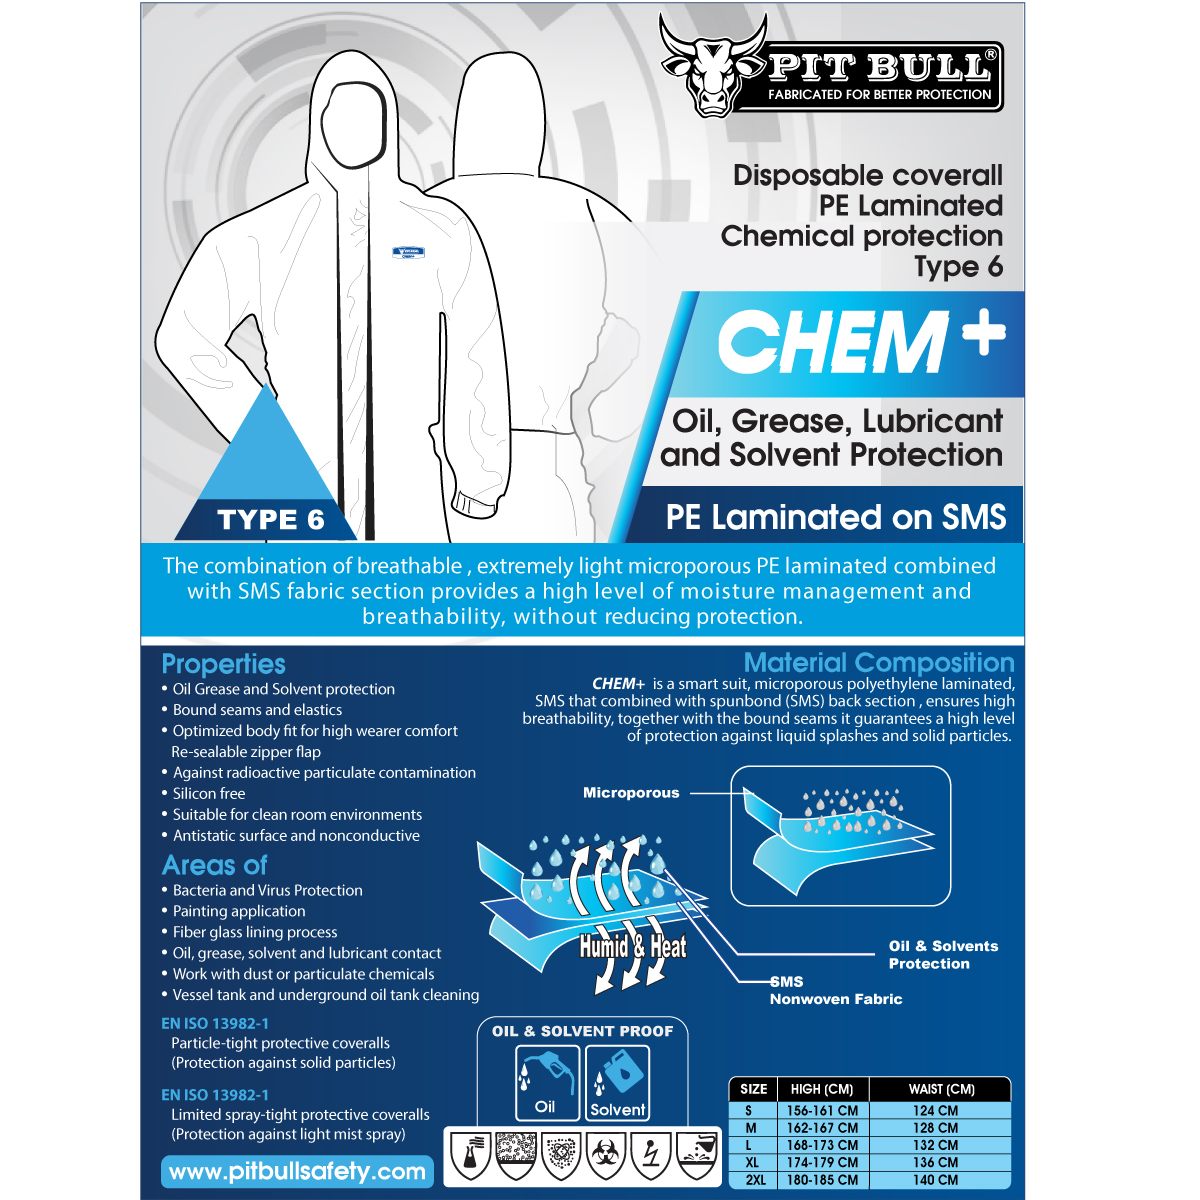 Chem+ Disposable Coverall